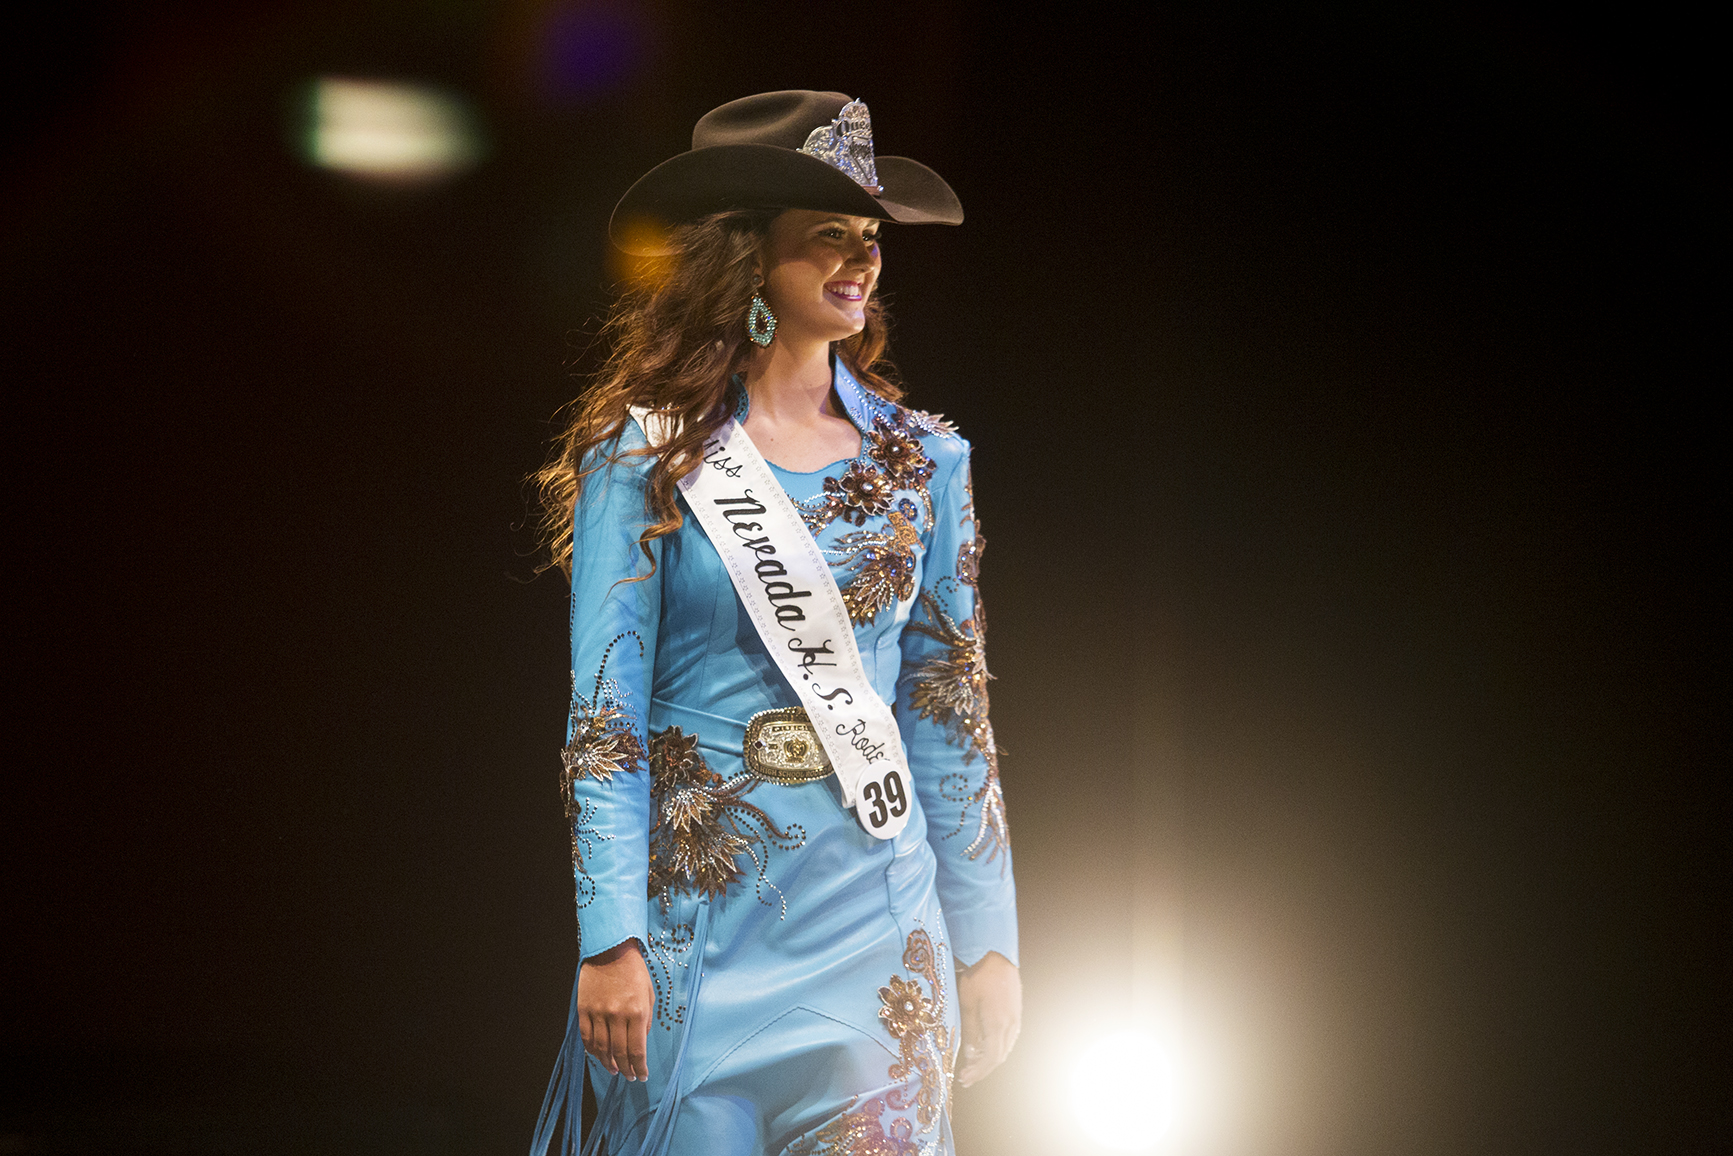 Catherine Odgers, Nevada's high school rodeo queen, is introduced Saturday night at the Heritage Center at Cam-plex.